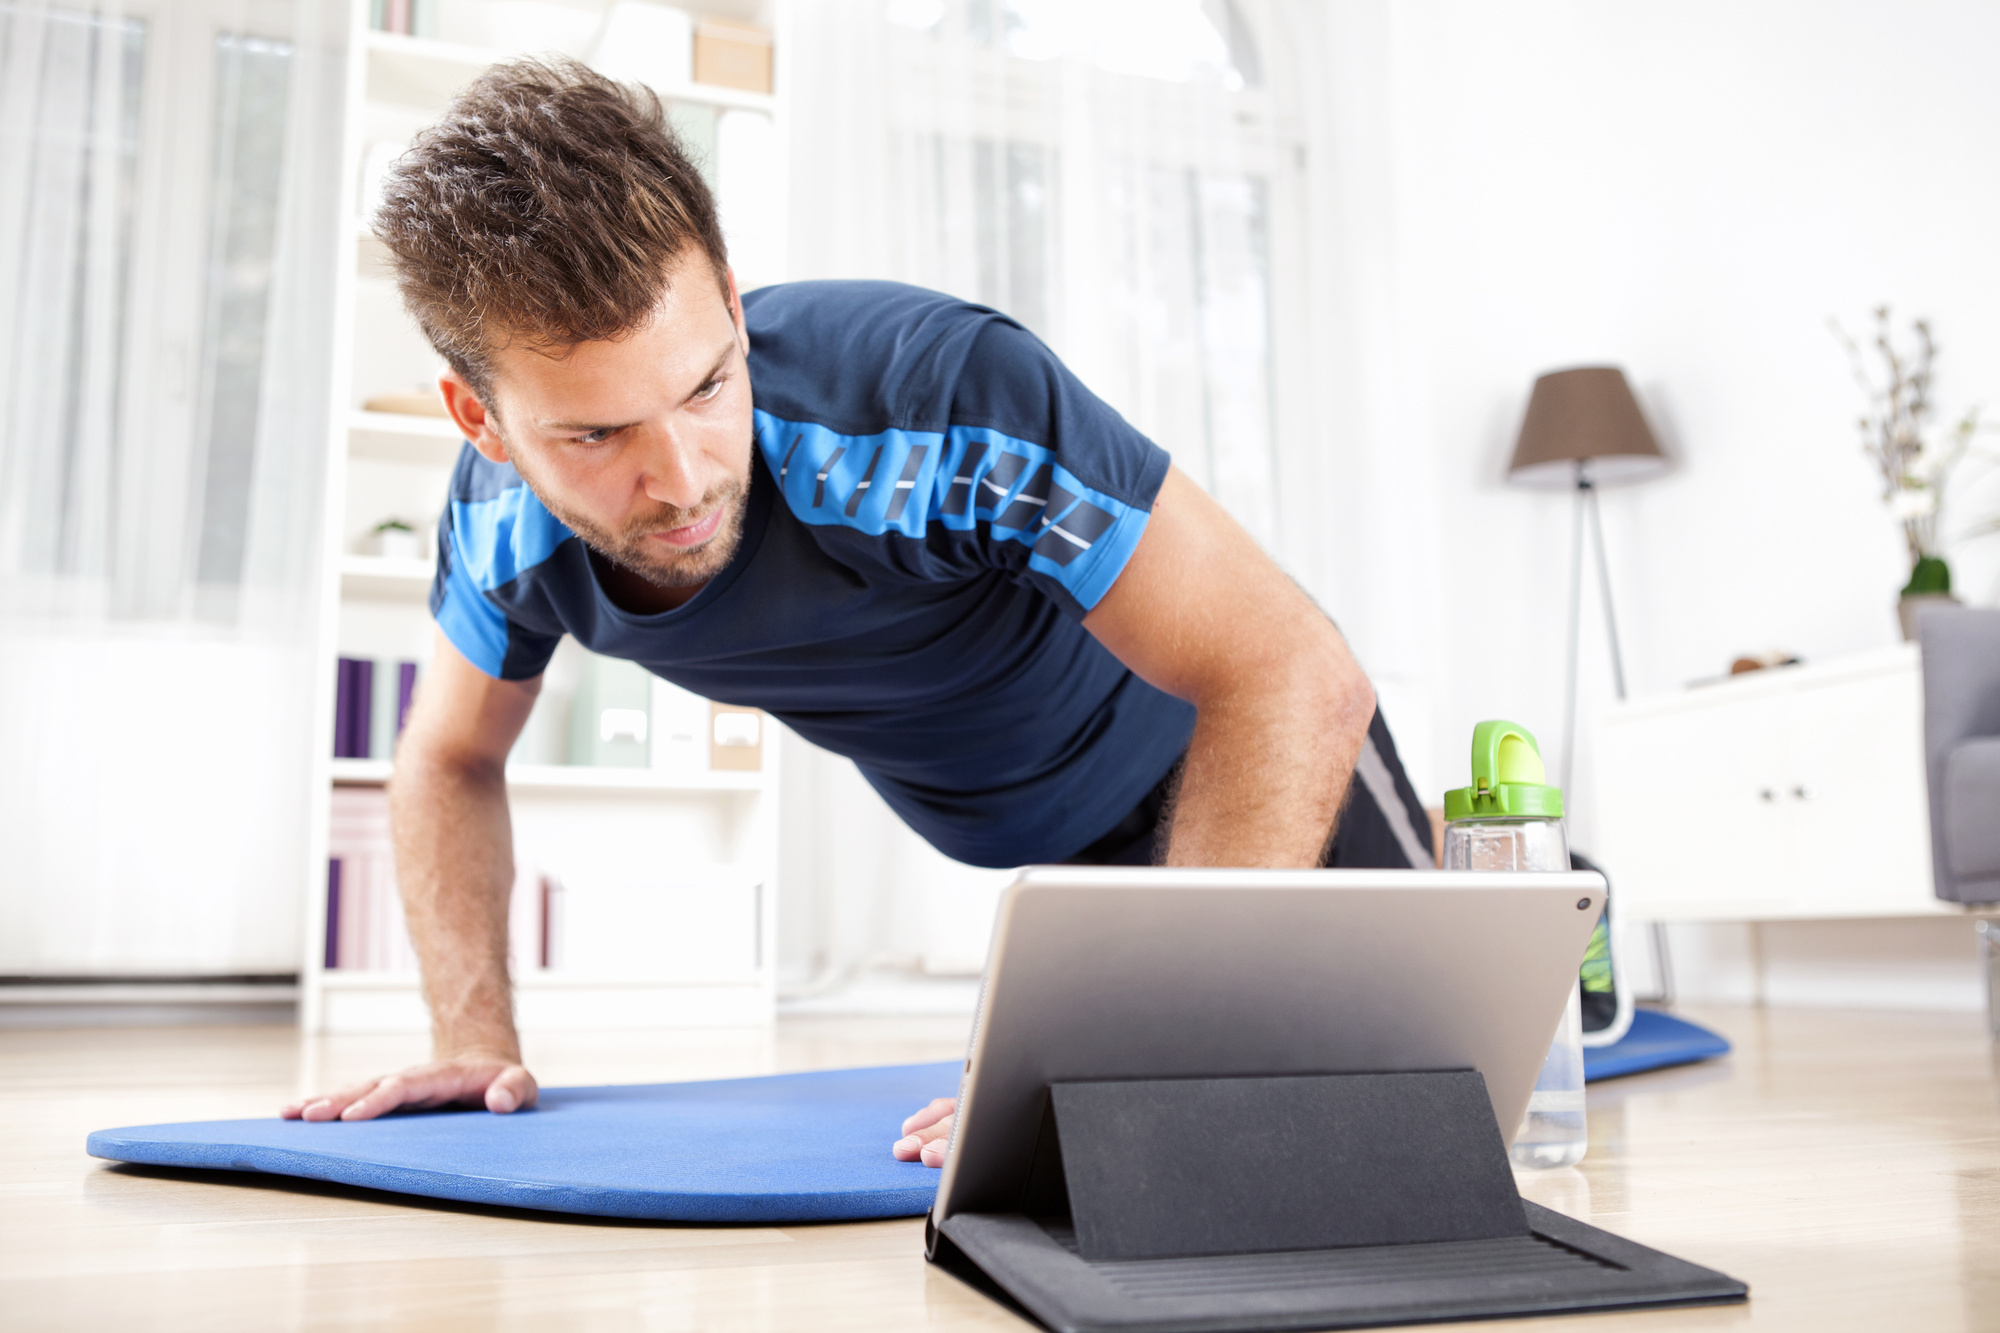 man doing online workout